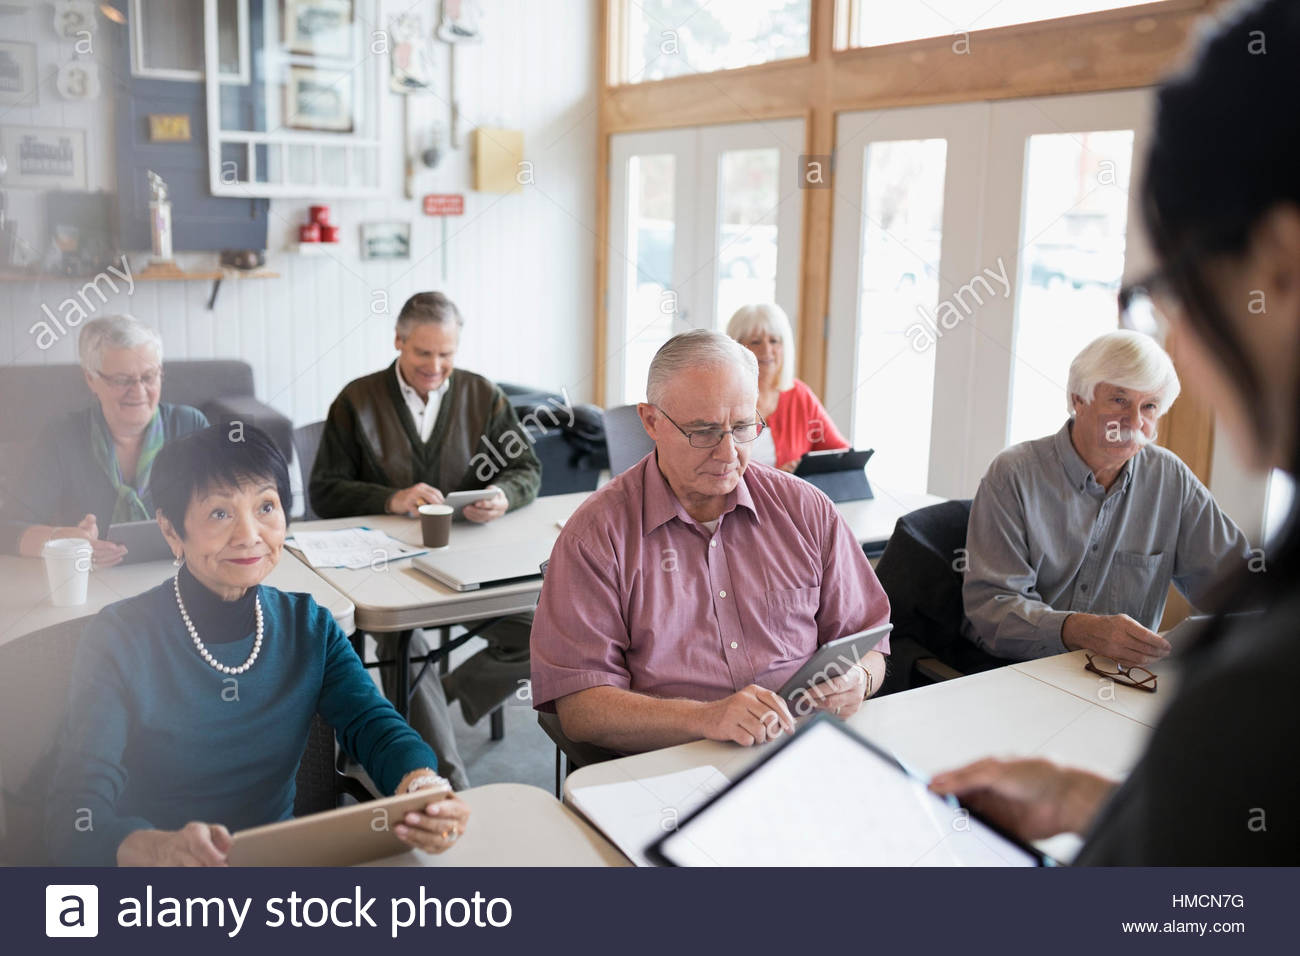 Teacher and senior adults using digital tablets in classroom - Stock Image